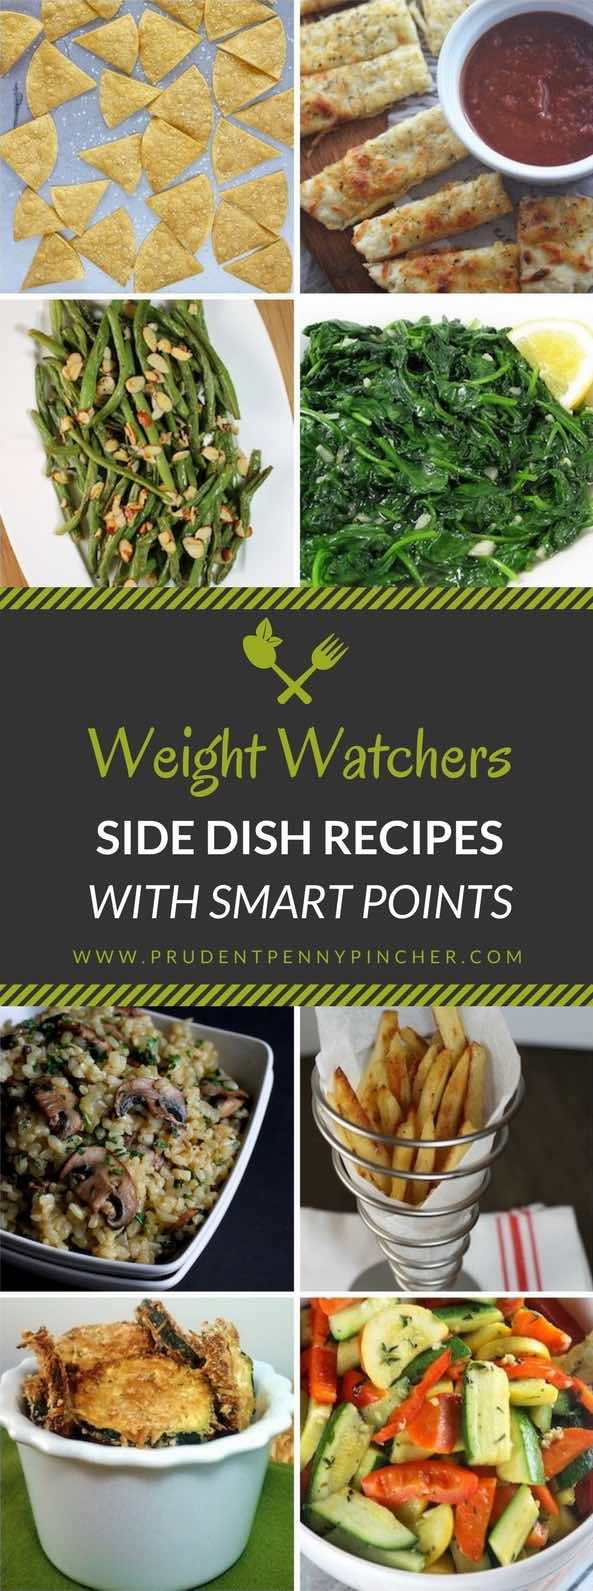 Weight Watcher Side Dish Recipes With Smart Points